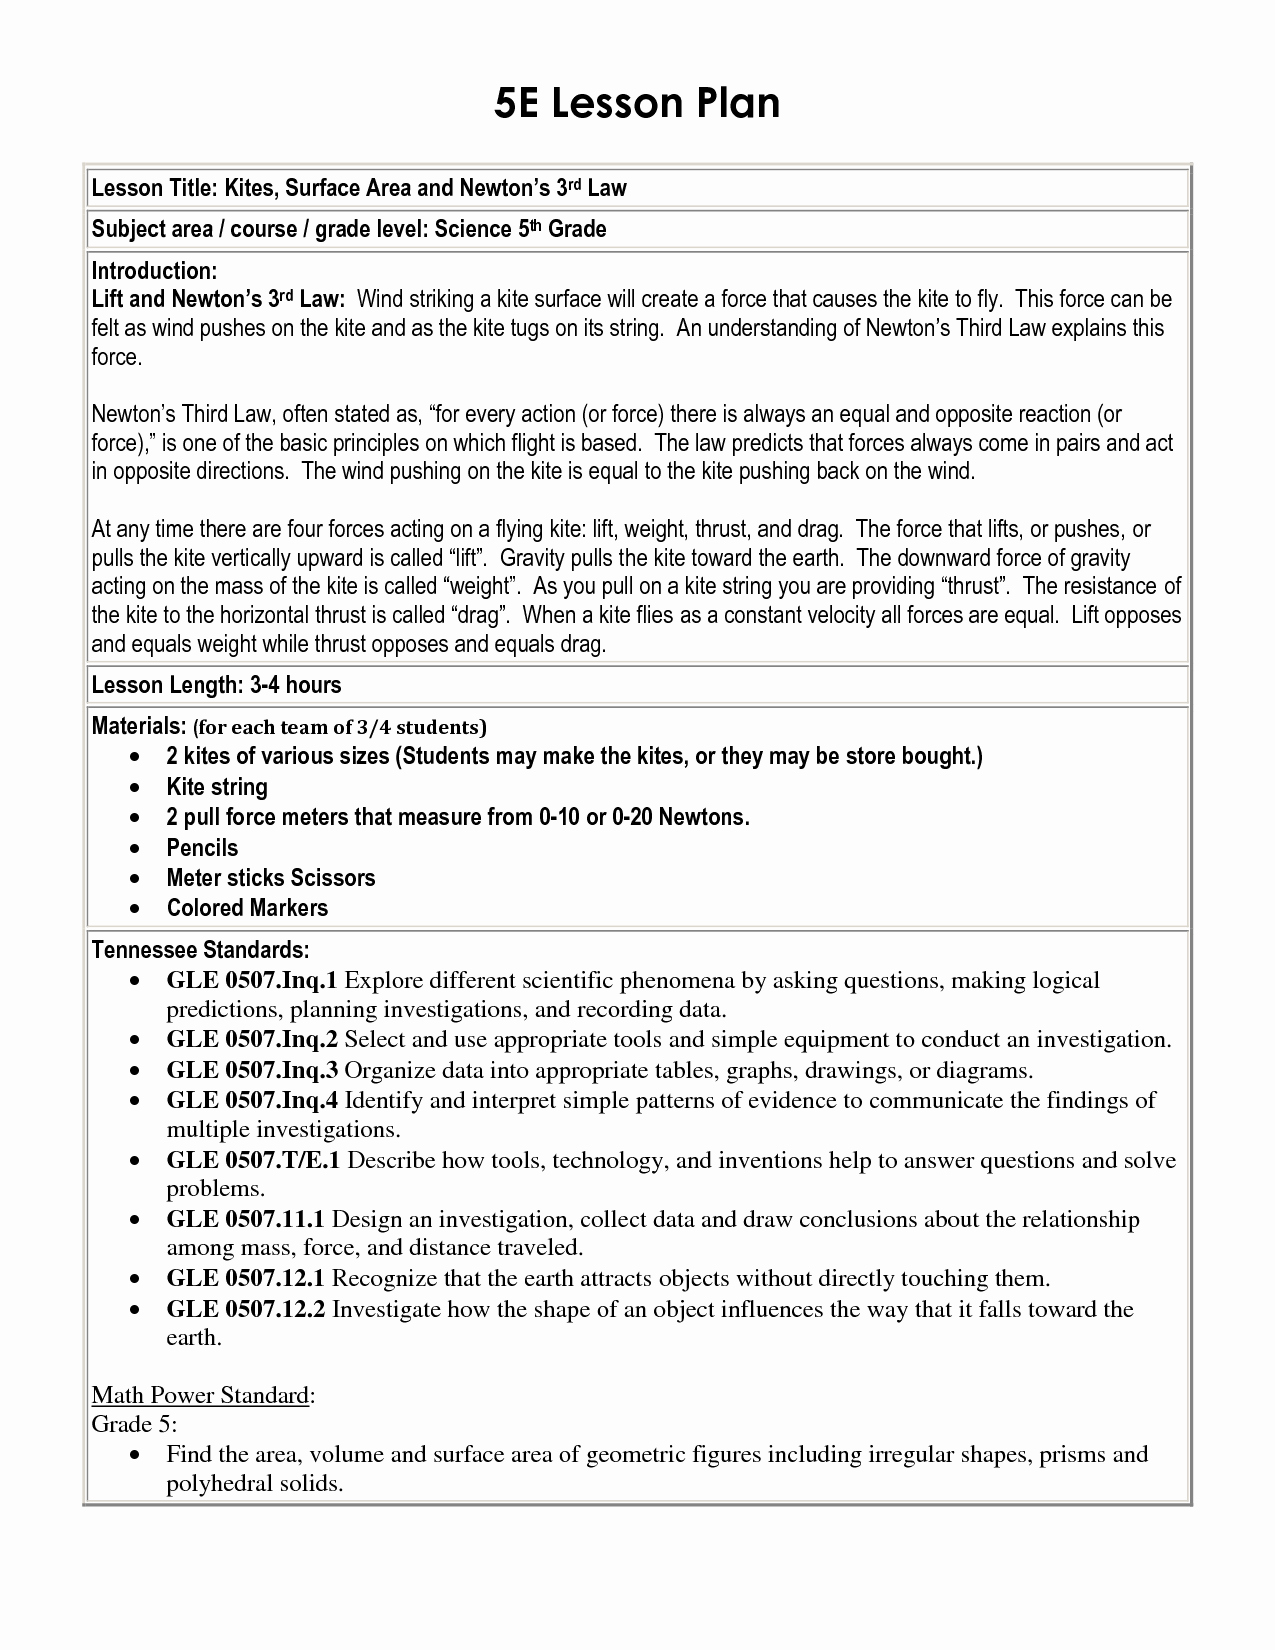 5e Lesson Plan Template Best Of 5 E Lesson Plan Template